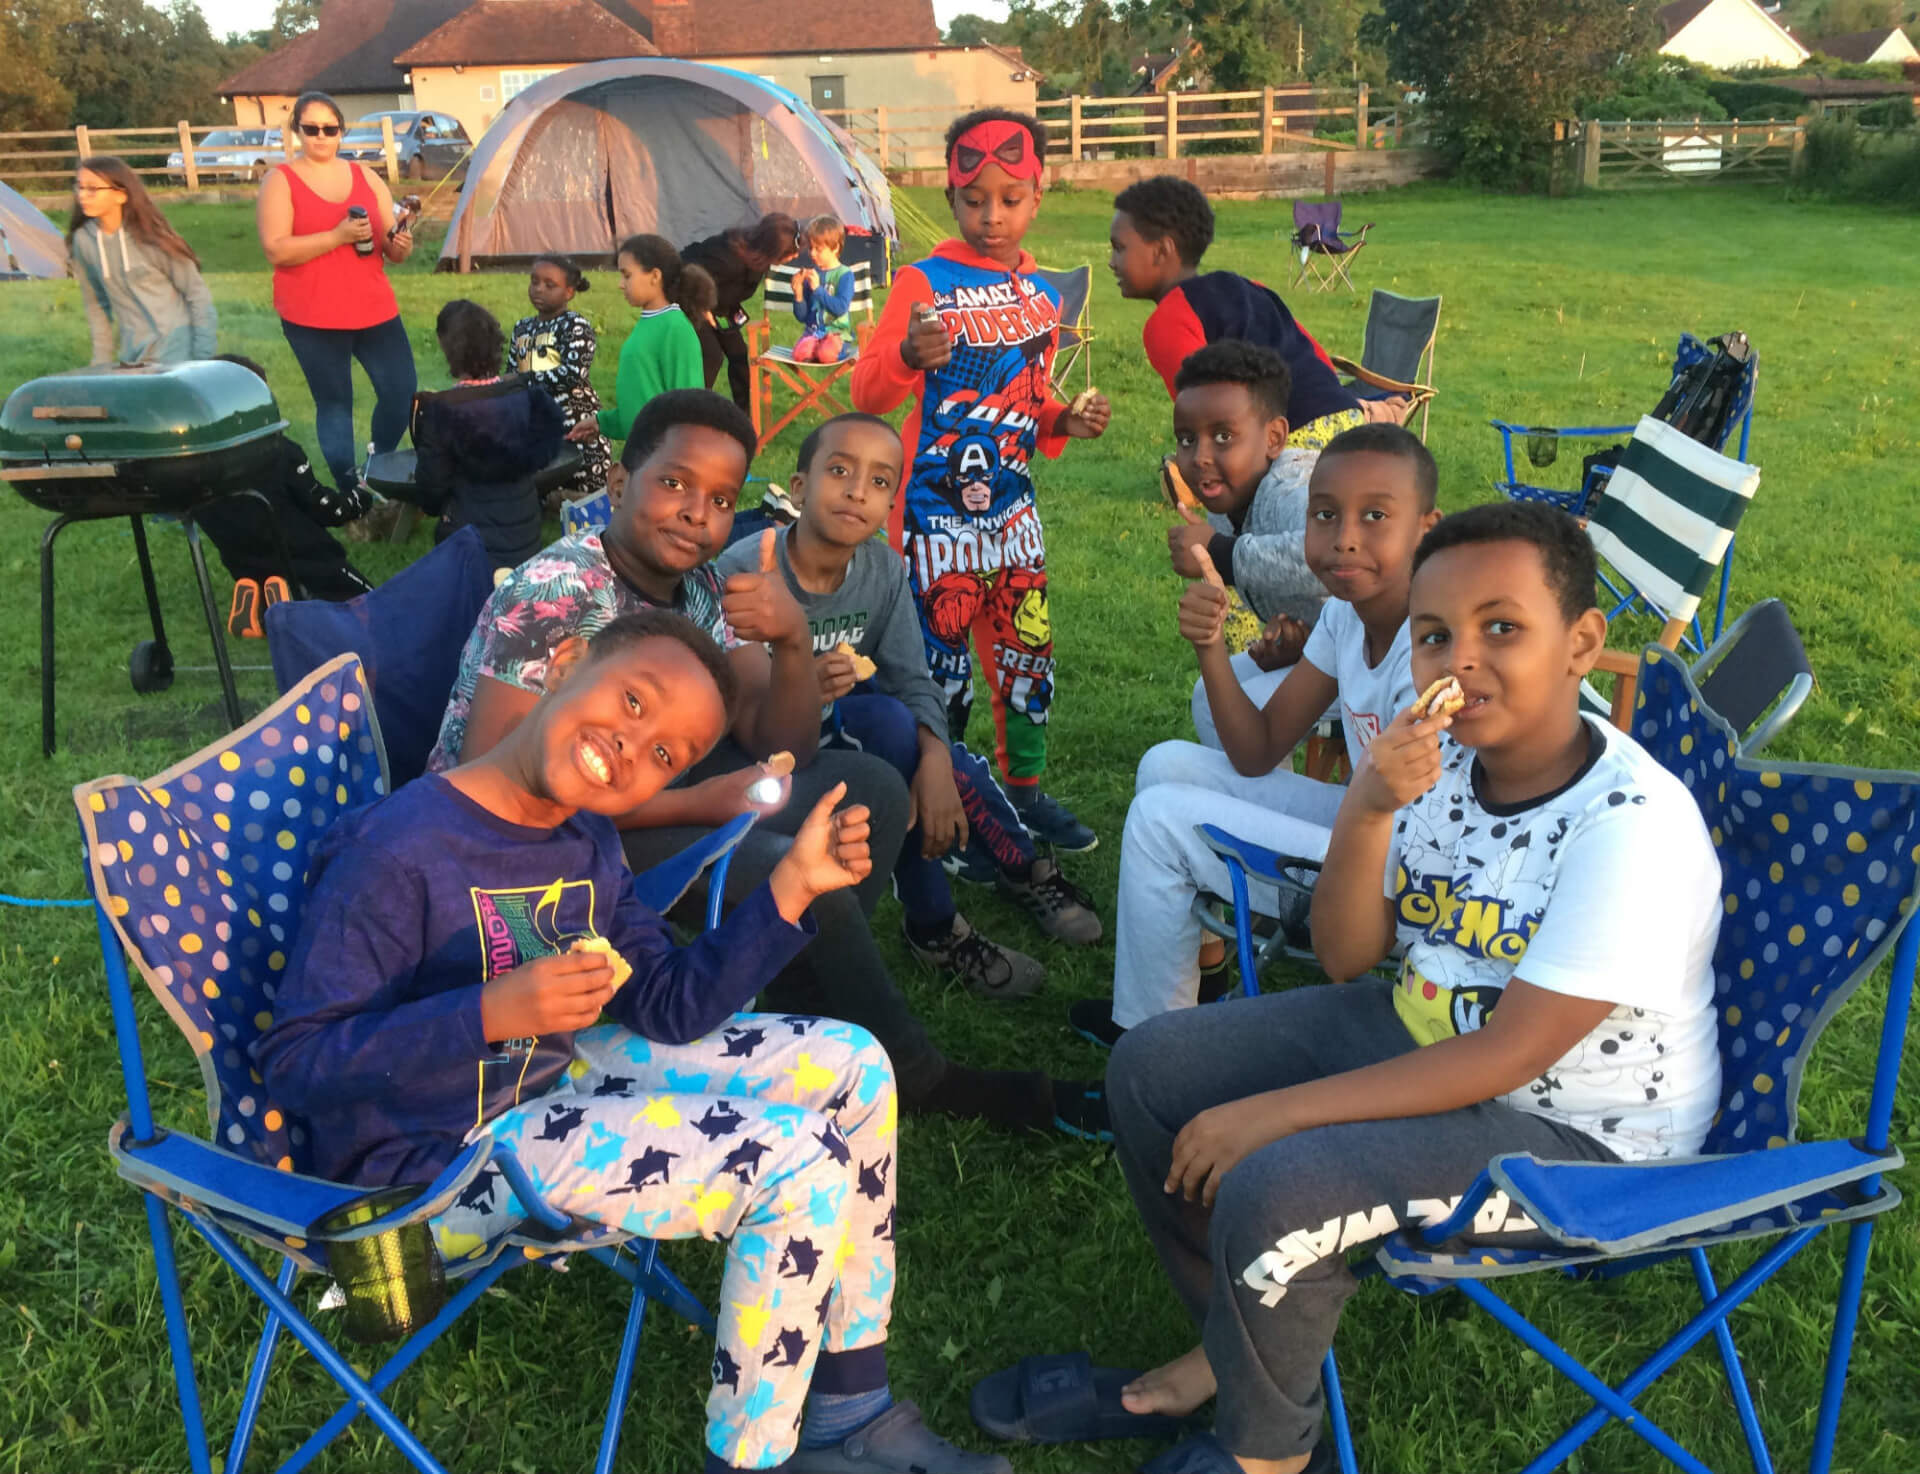 Children seated at the campsite eating dinner dressed in their pyjamas and giving a thumbs up.